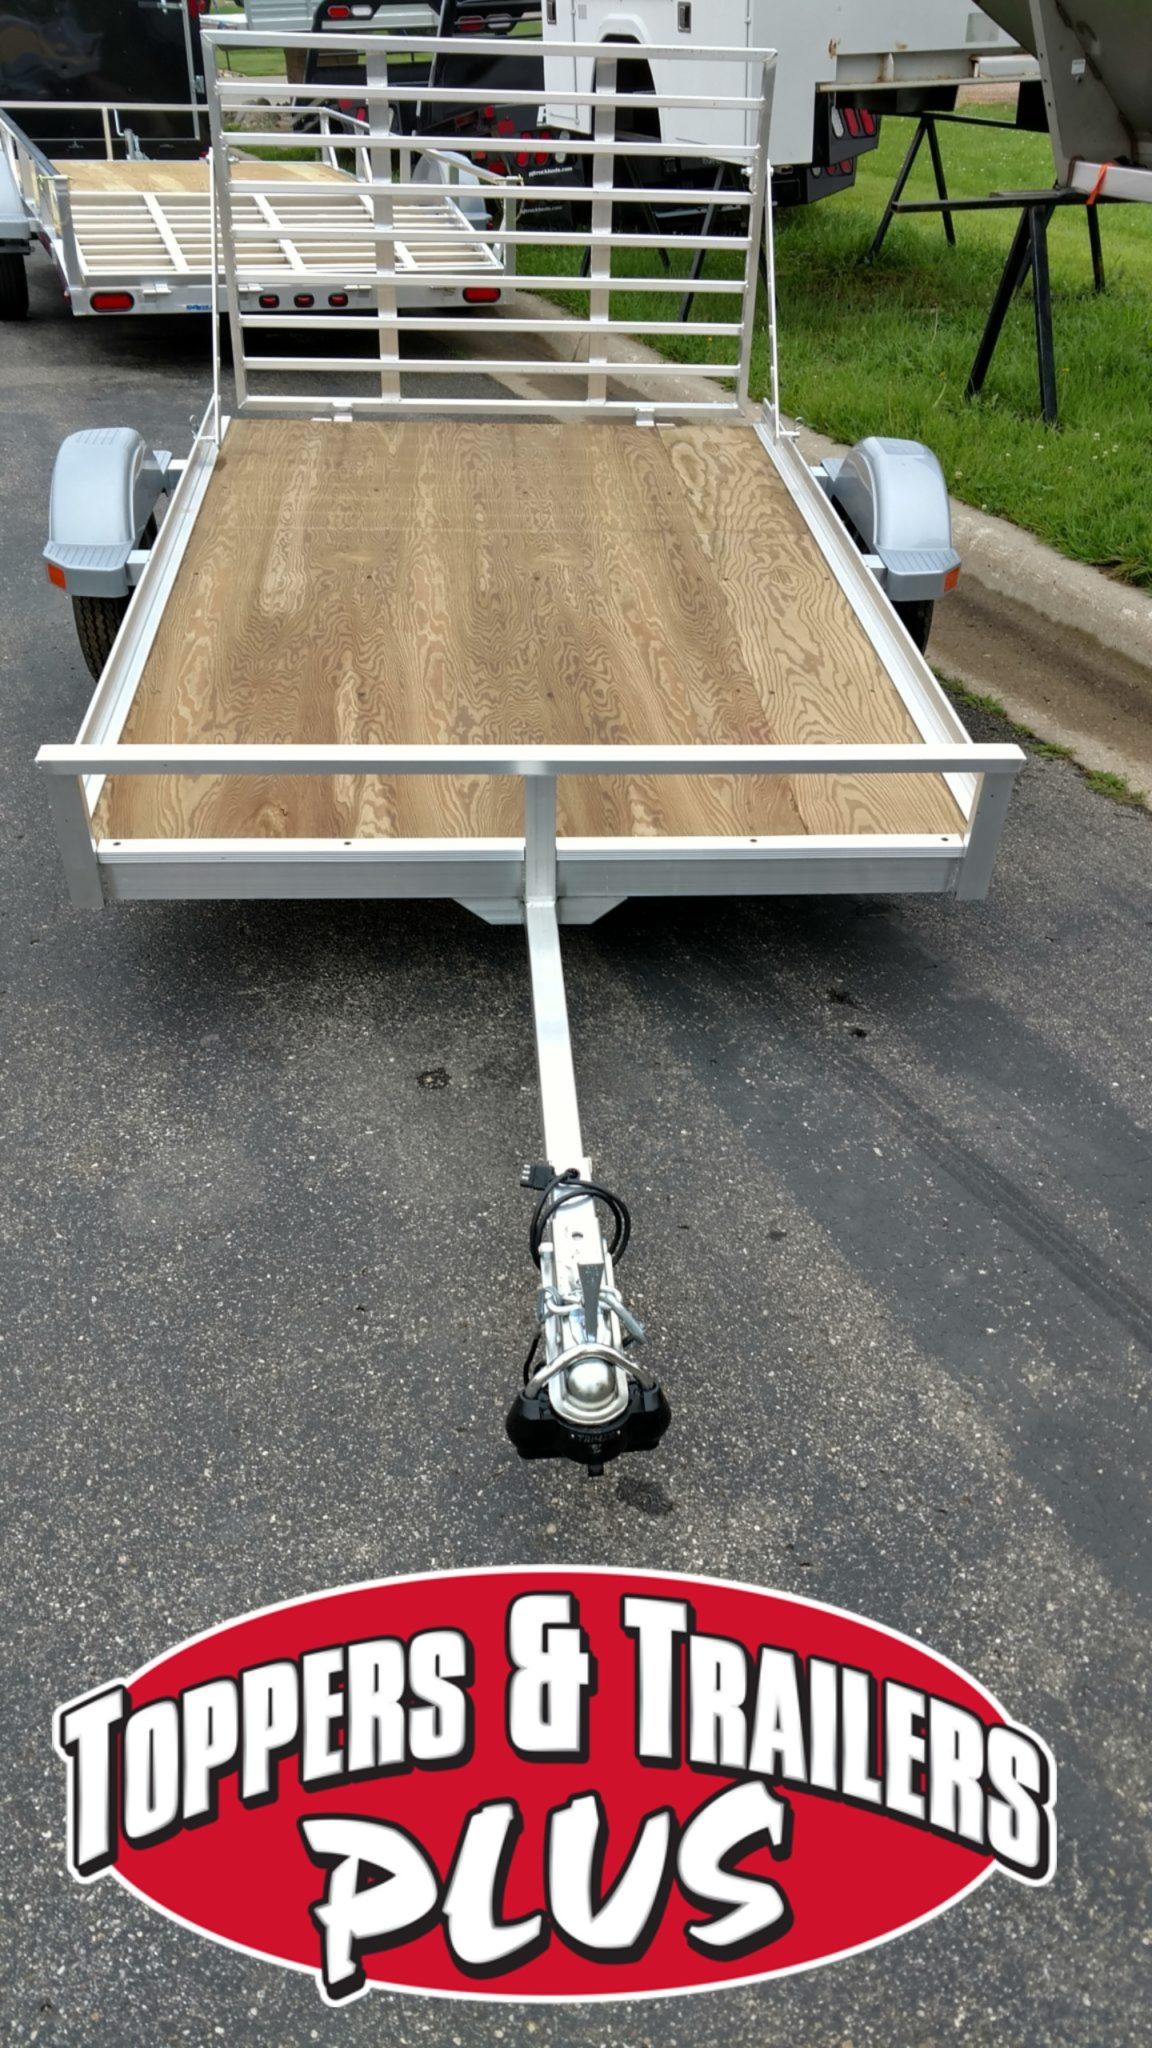 Eagle 5 X 8 Aluminum Trailer Toppers And Trailers Plus As Well Boat For Sale On Wiring Call Our Sales Deprartment 507 387 7376